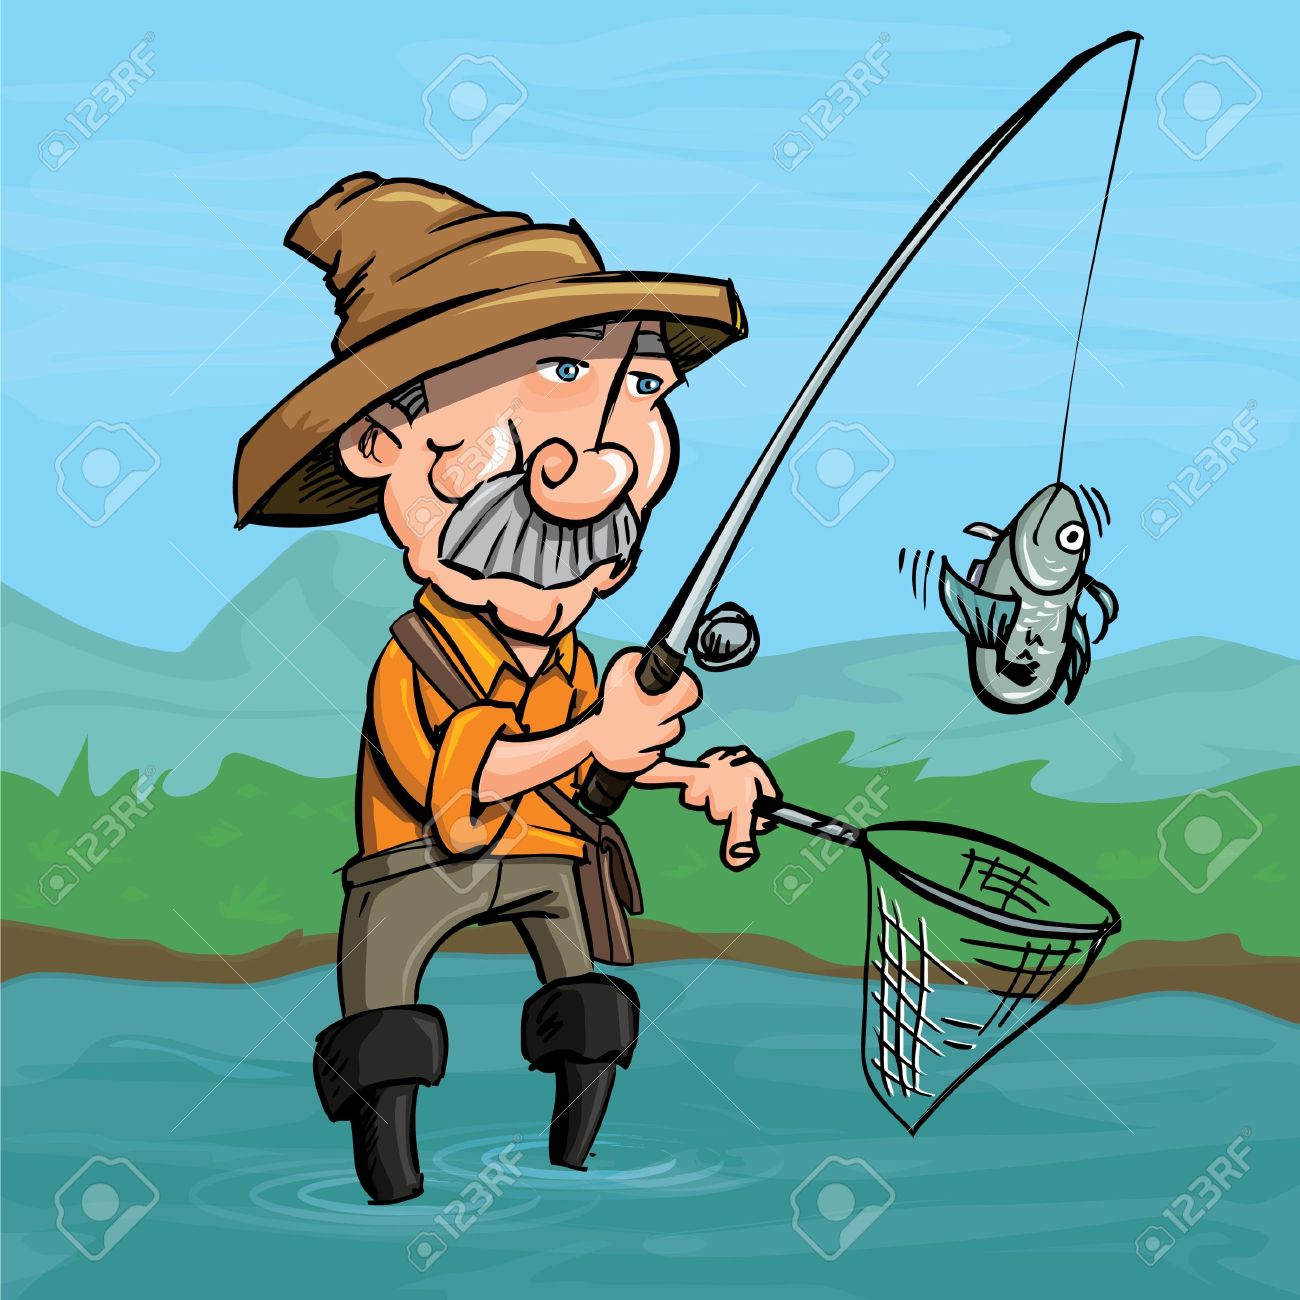 Cartoon fisherman catching a fish. He is standng in a river Standard-Bild - 9290255